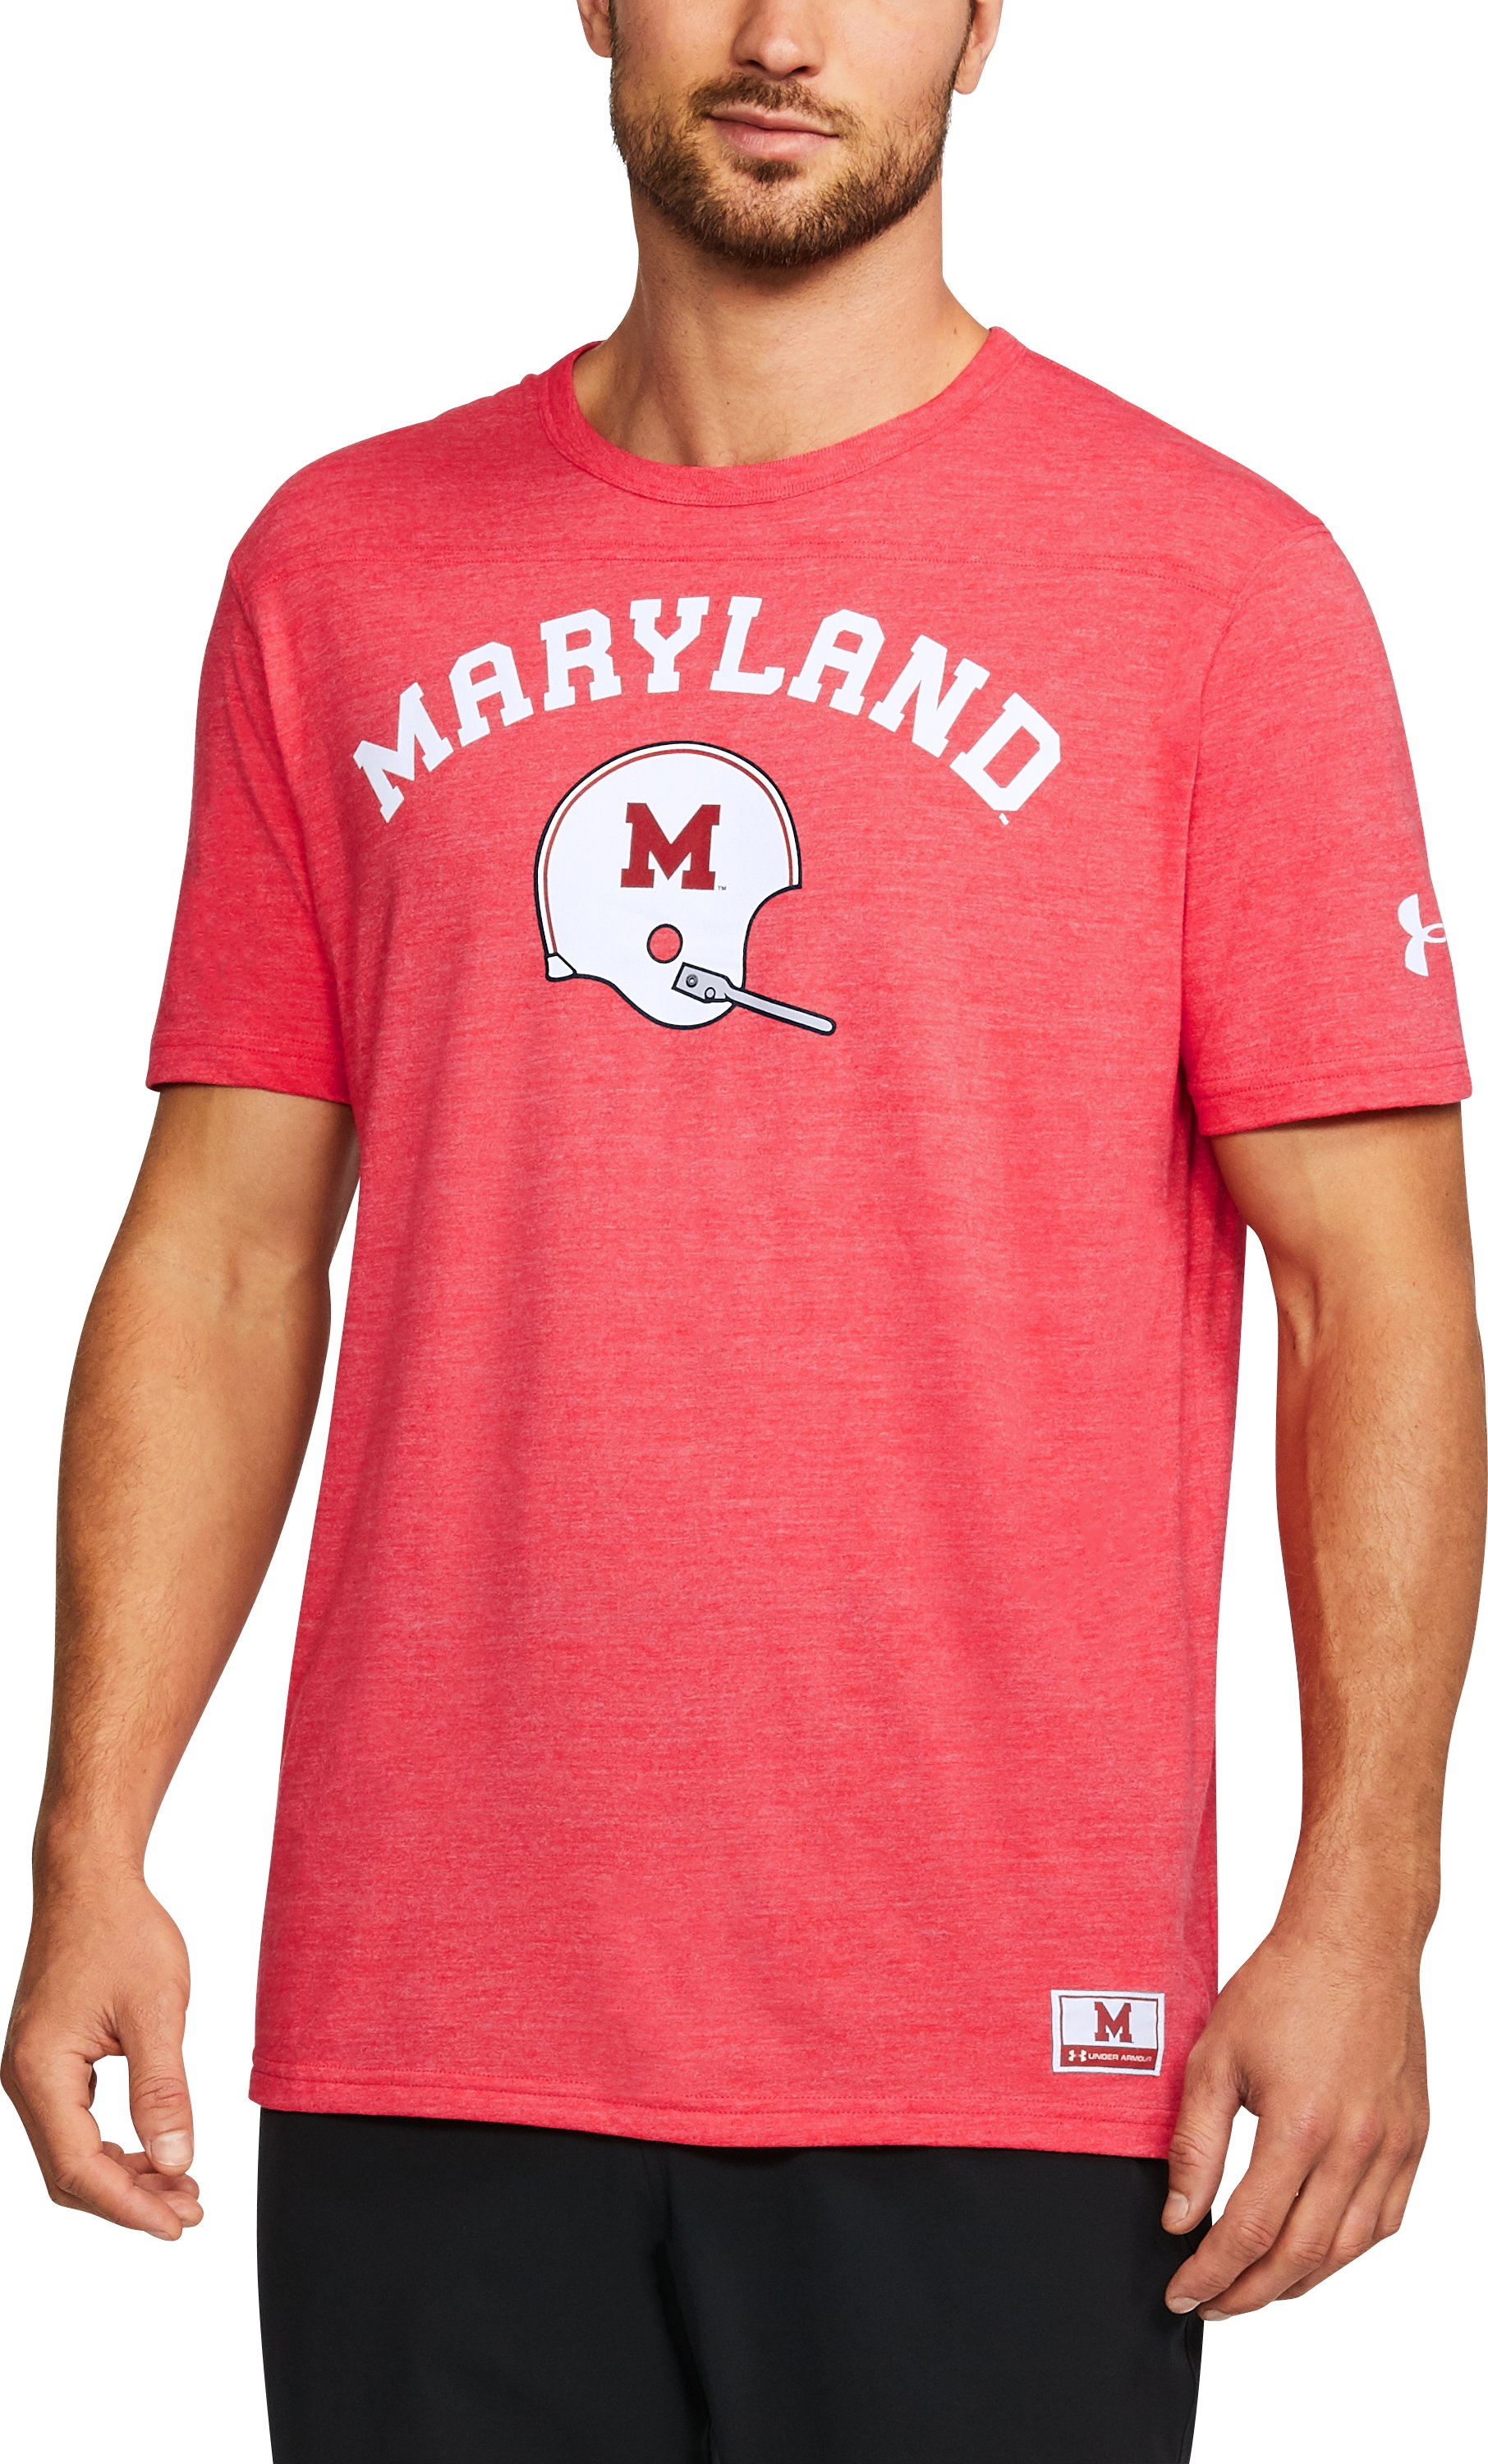 tri-blend t-shirt Men's Maryland UA Tri-Blend T-Shirt